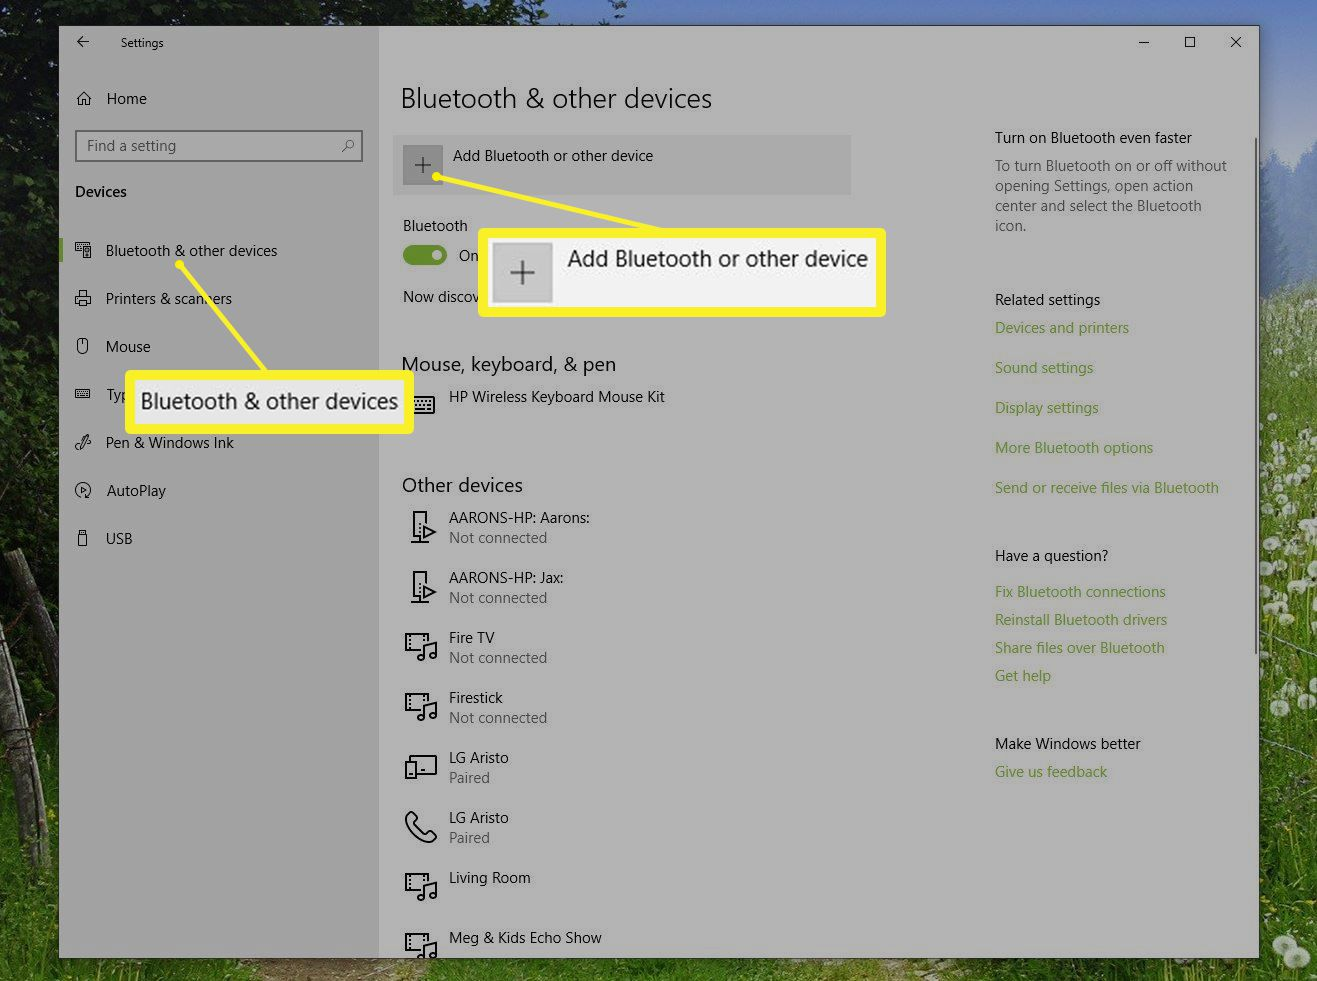 Bluetooth & other devices screen